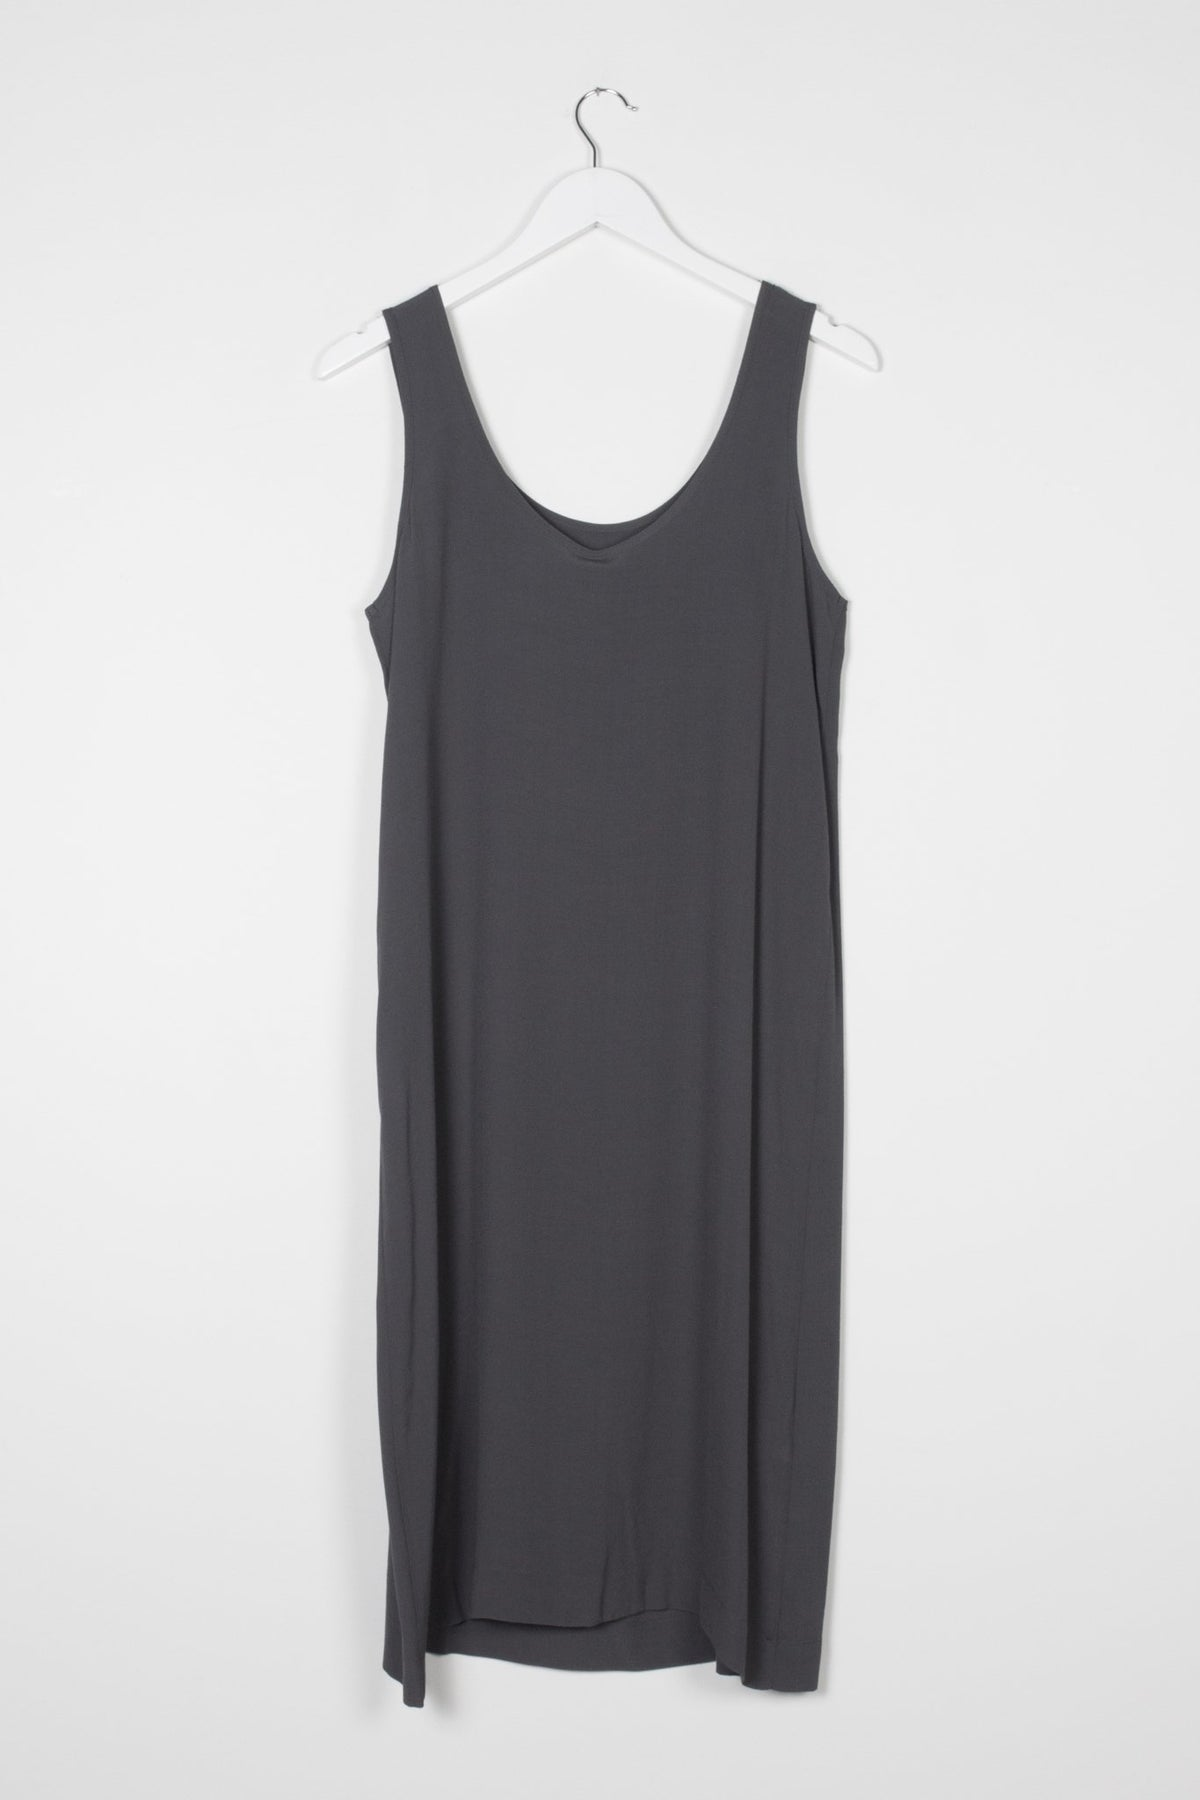 Nyne Ollie Dress Charcoal Made in New Zealand NZ Designer Clothing Stockists Auckland Parnell